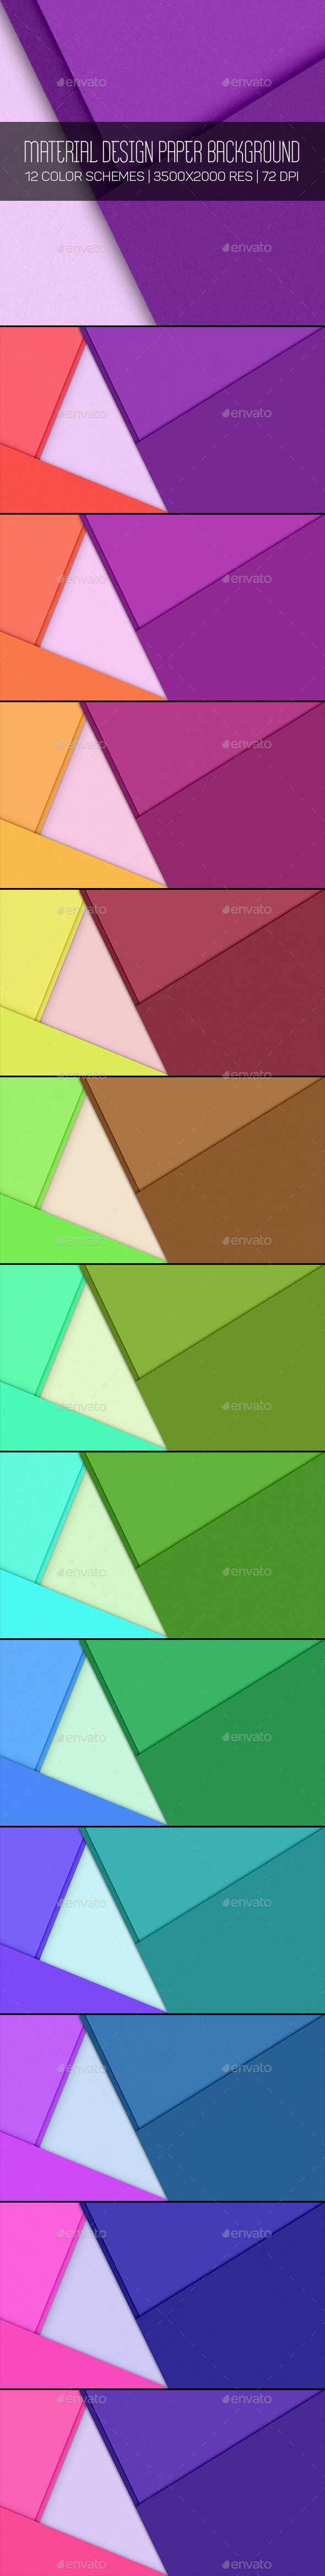 Material Design Paper Background - Abstract Backgrounds